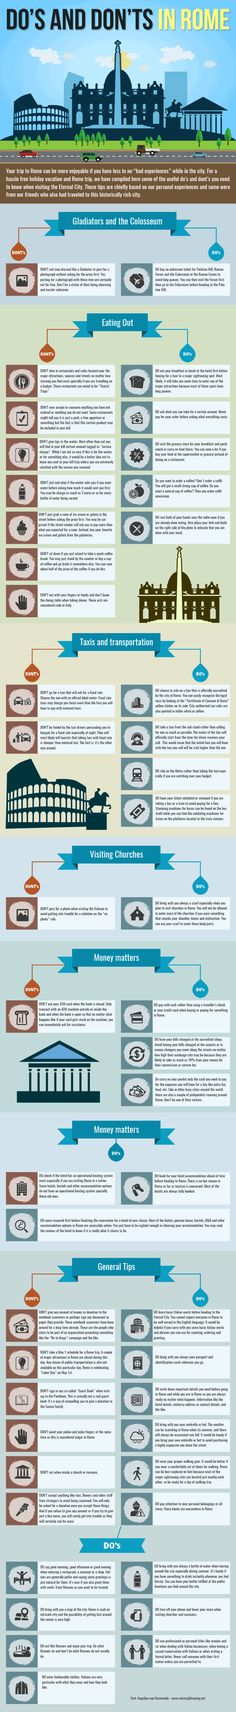 Rome is a great city for tourists. But watch out there are some people who want to expliot uninformed people. Here is our list on want to Do and what not to do in Rome to get the most out of your holiday. #infographic